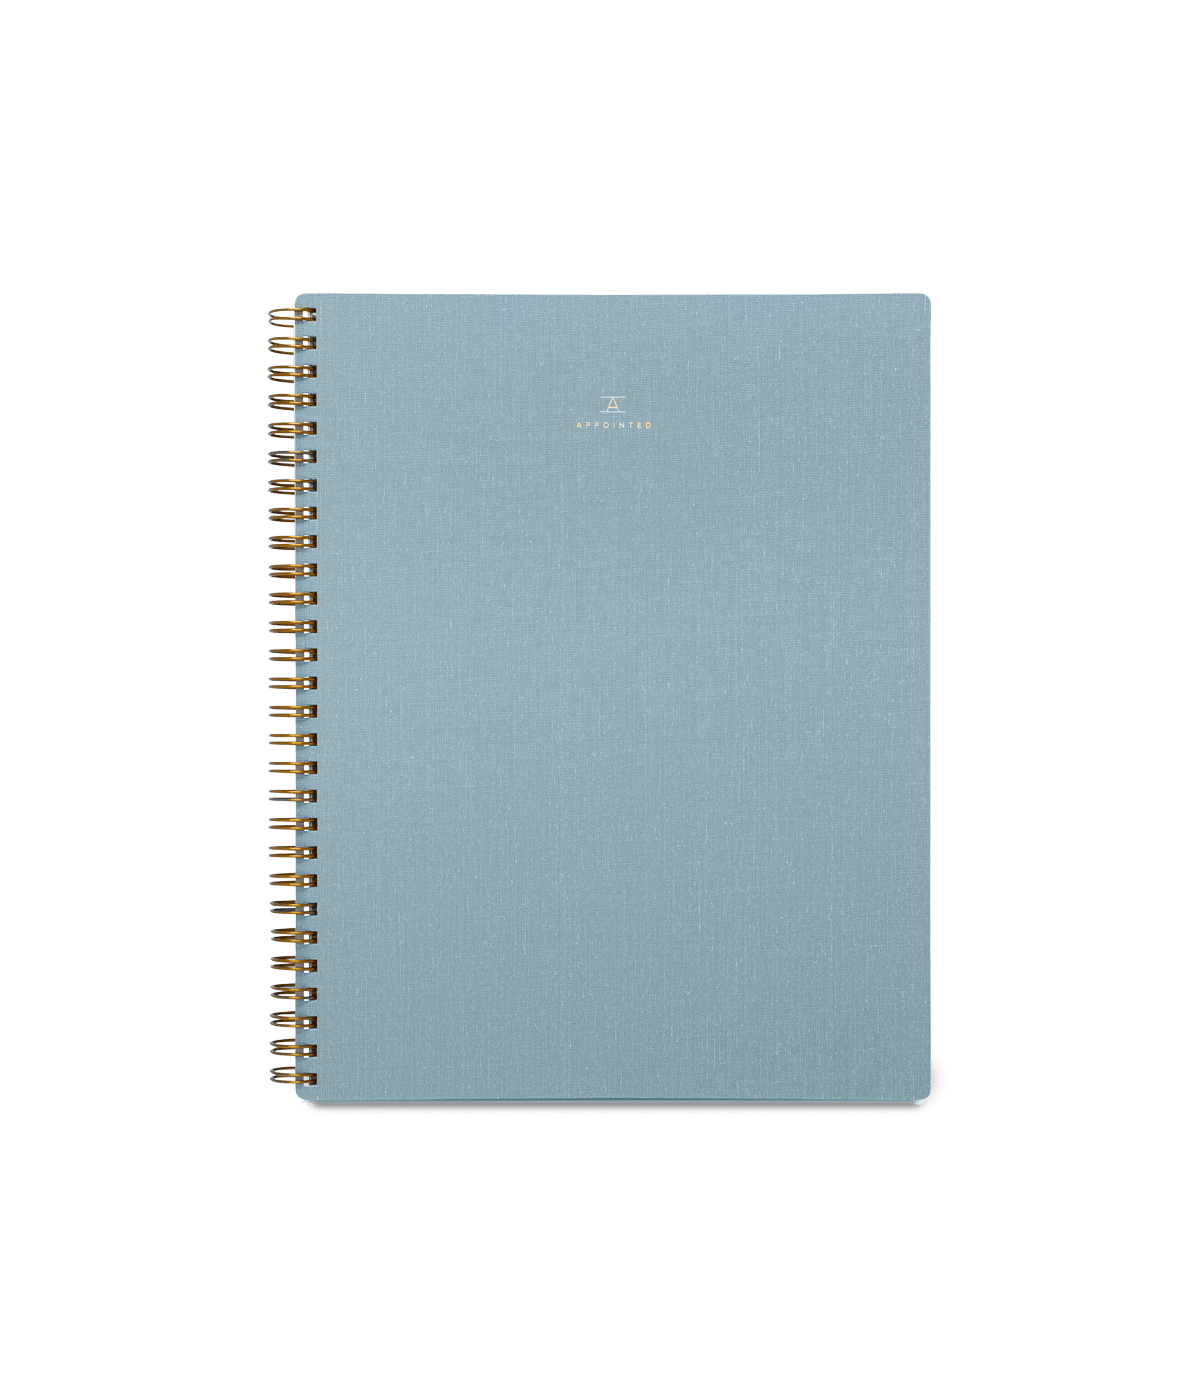 Workbook - Chambray Blue (Grid)